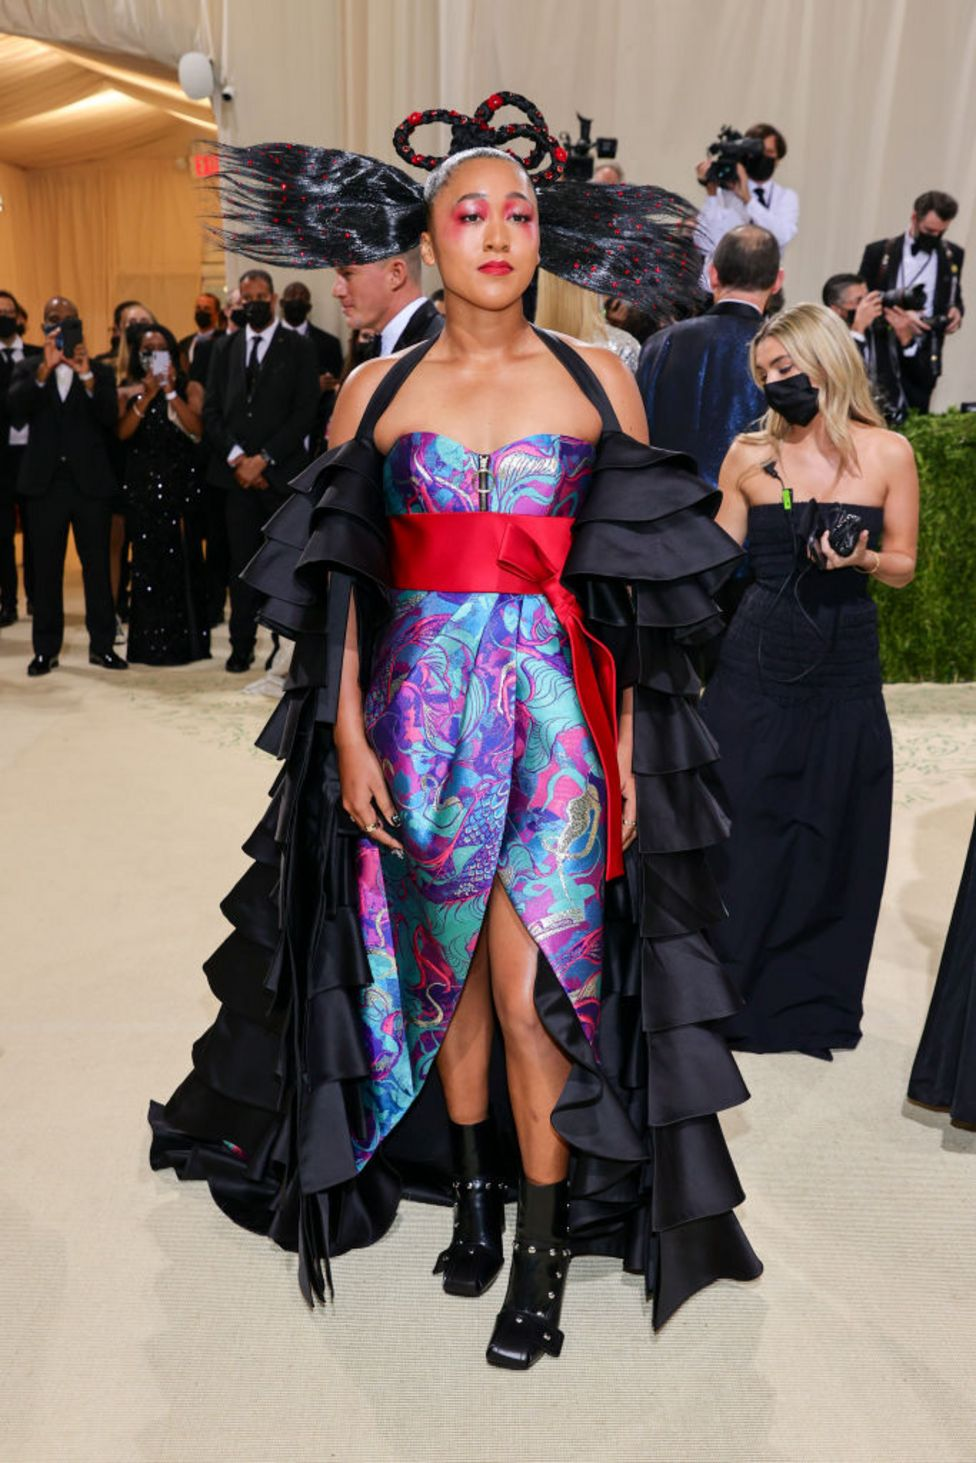 Co-host Naomi Osaka showed off a colourful Louis Vuitton dress and elaborate hairstyle - said to be a nod to her Haitian and Japanese heritage